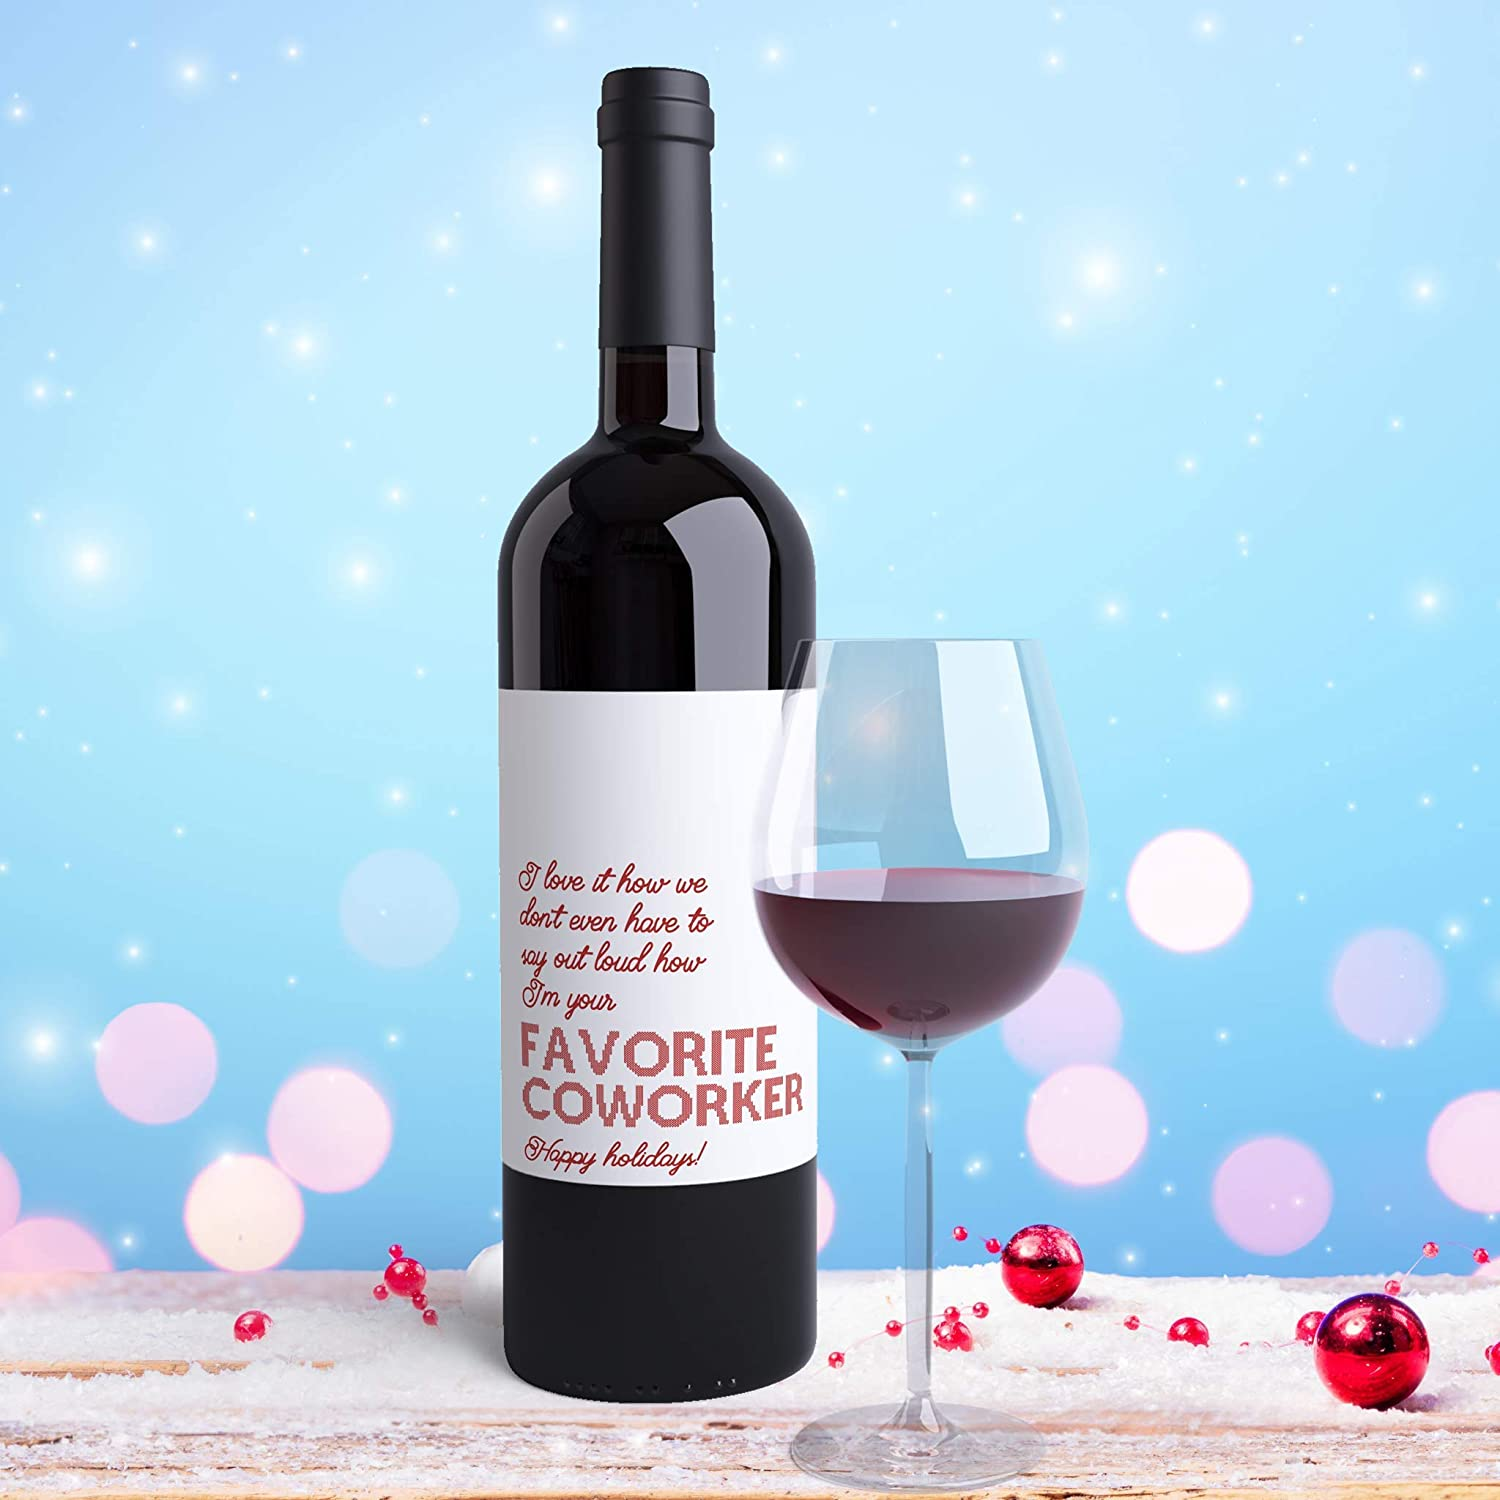 Wine Label for Work Colleagues in Corporate Office Holiday Card Adult Humor Funny Christmas Gift for Coworkers Favorite Coworker